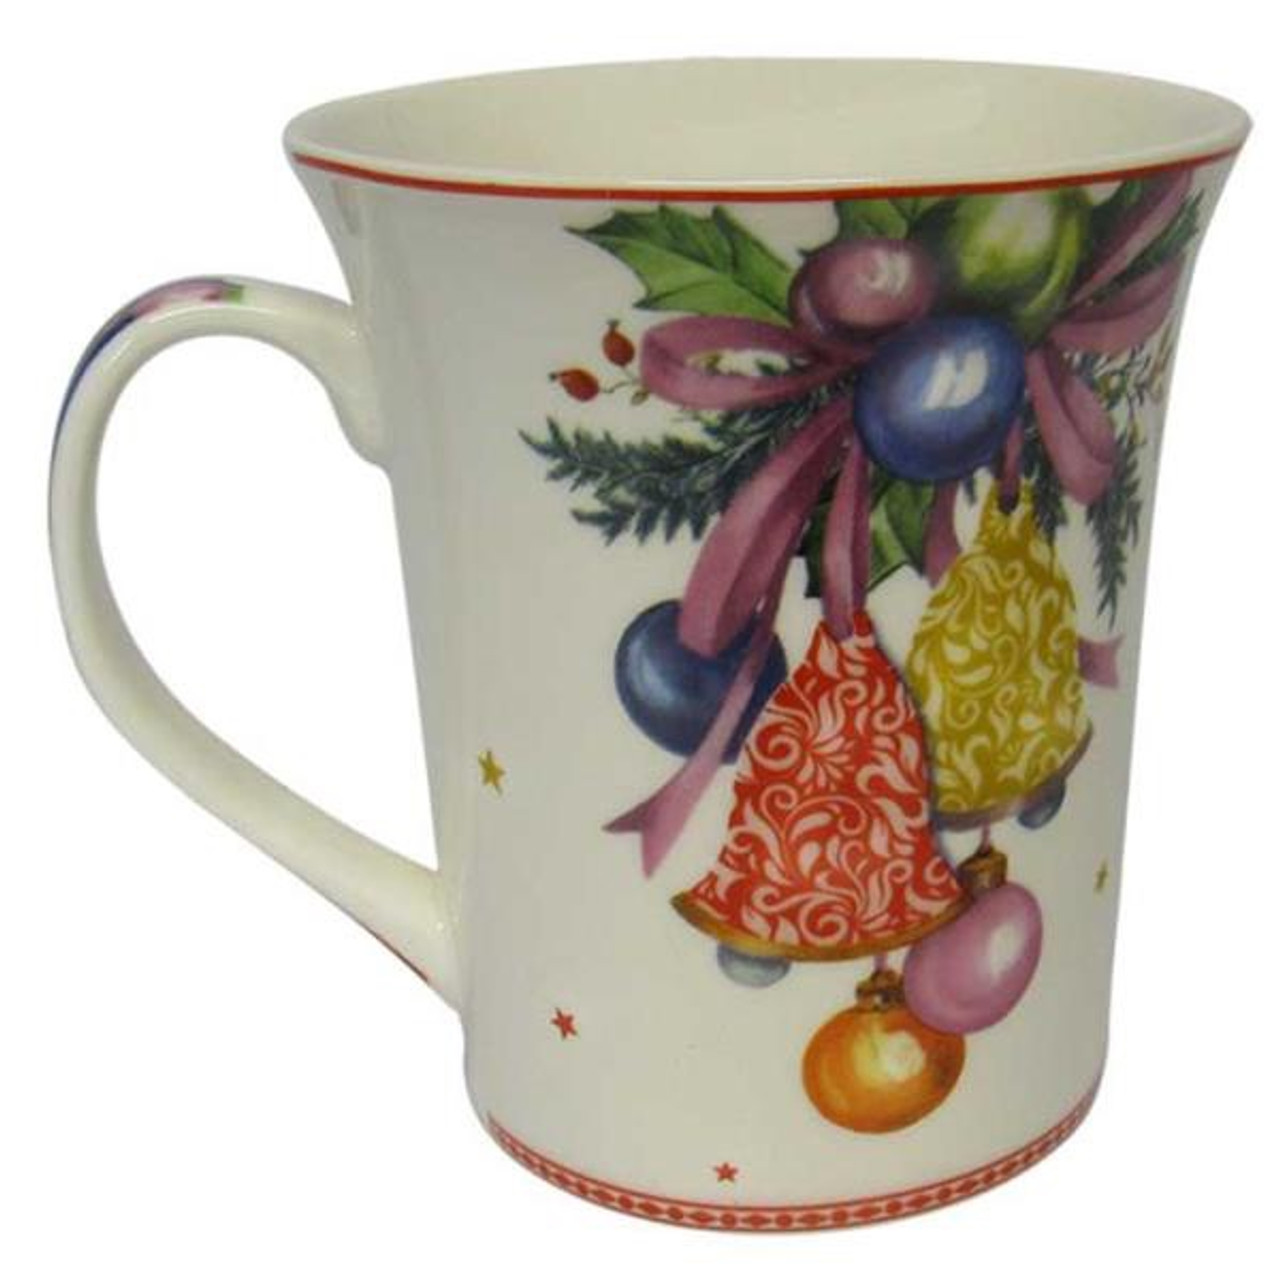 Mug With Christmas Decor Design 4 Different Designs Adore Collection